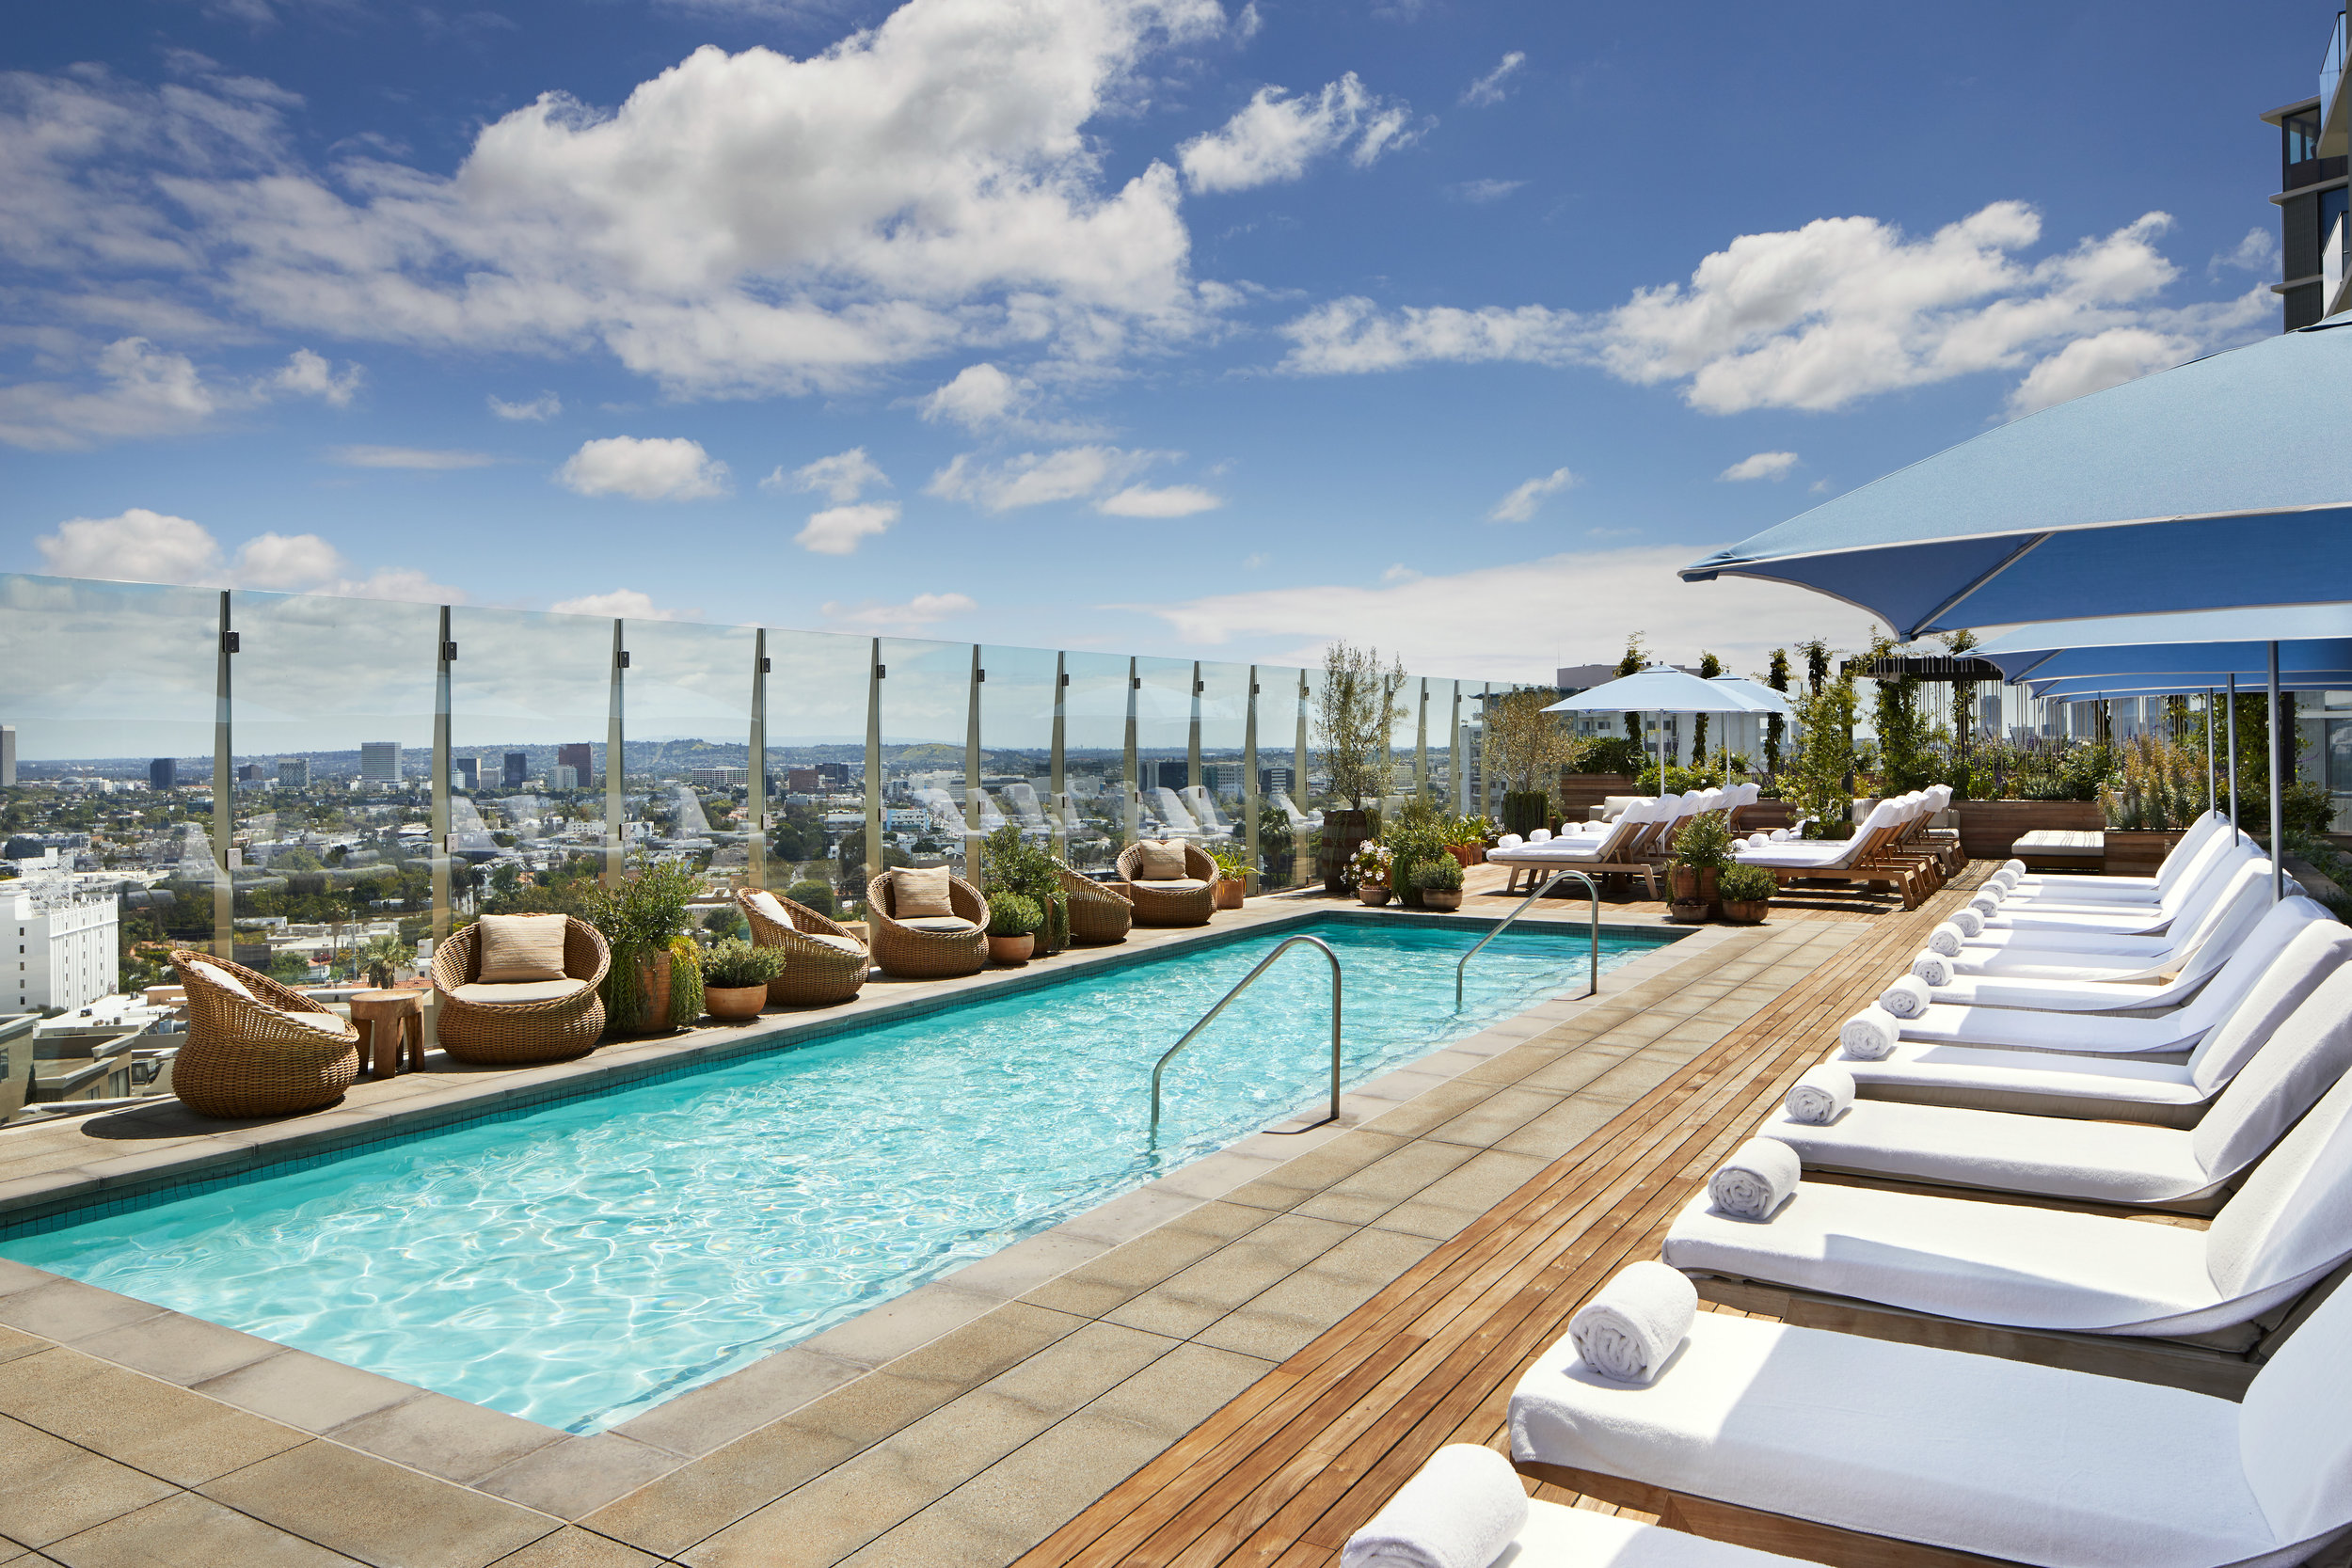 Pool at 1 Hotel West Hollywood, Photo Credit James Baigrie (1).jpg